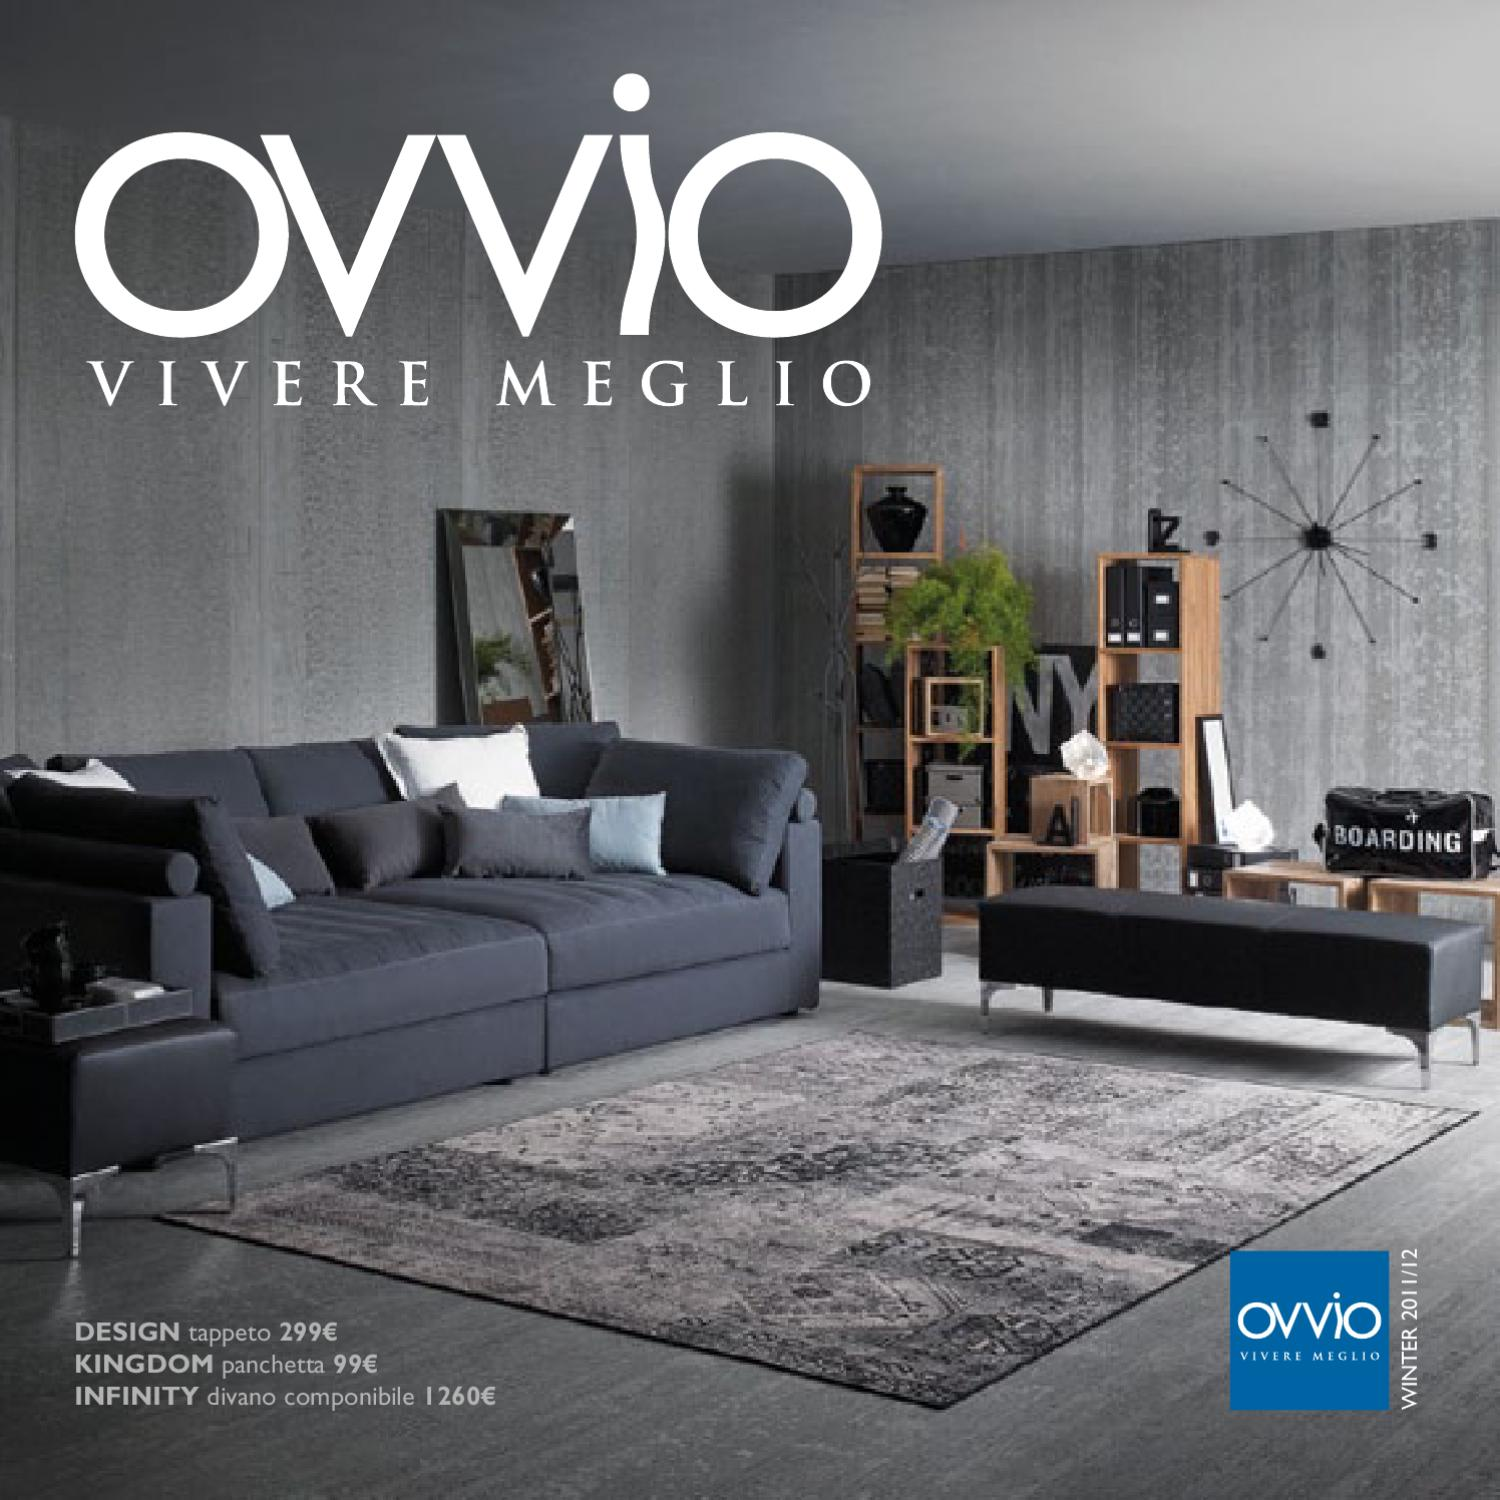 ovvio catalogo 2012 by marco pedrali issuu